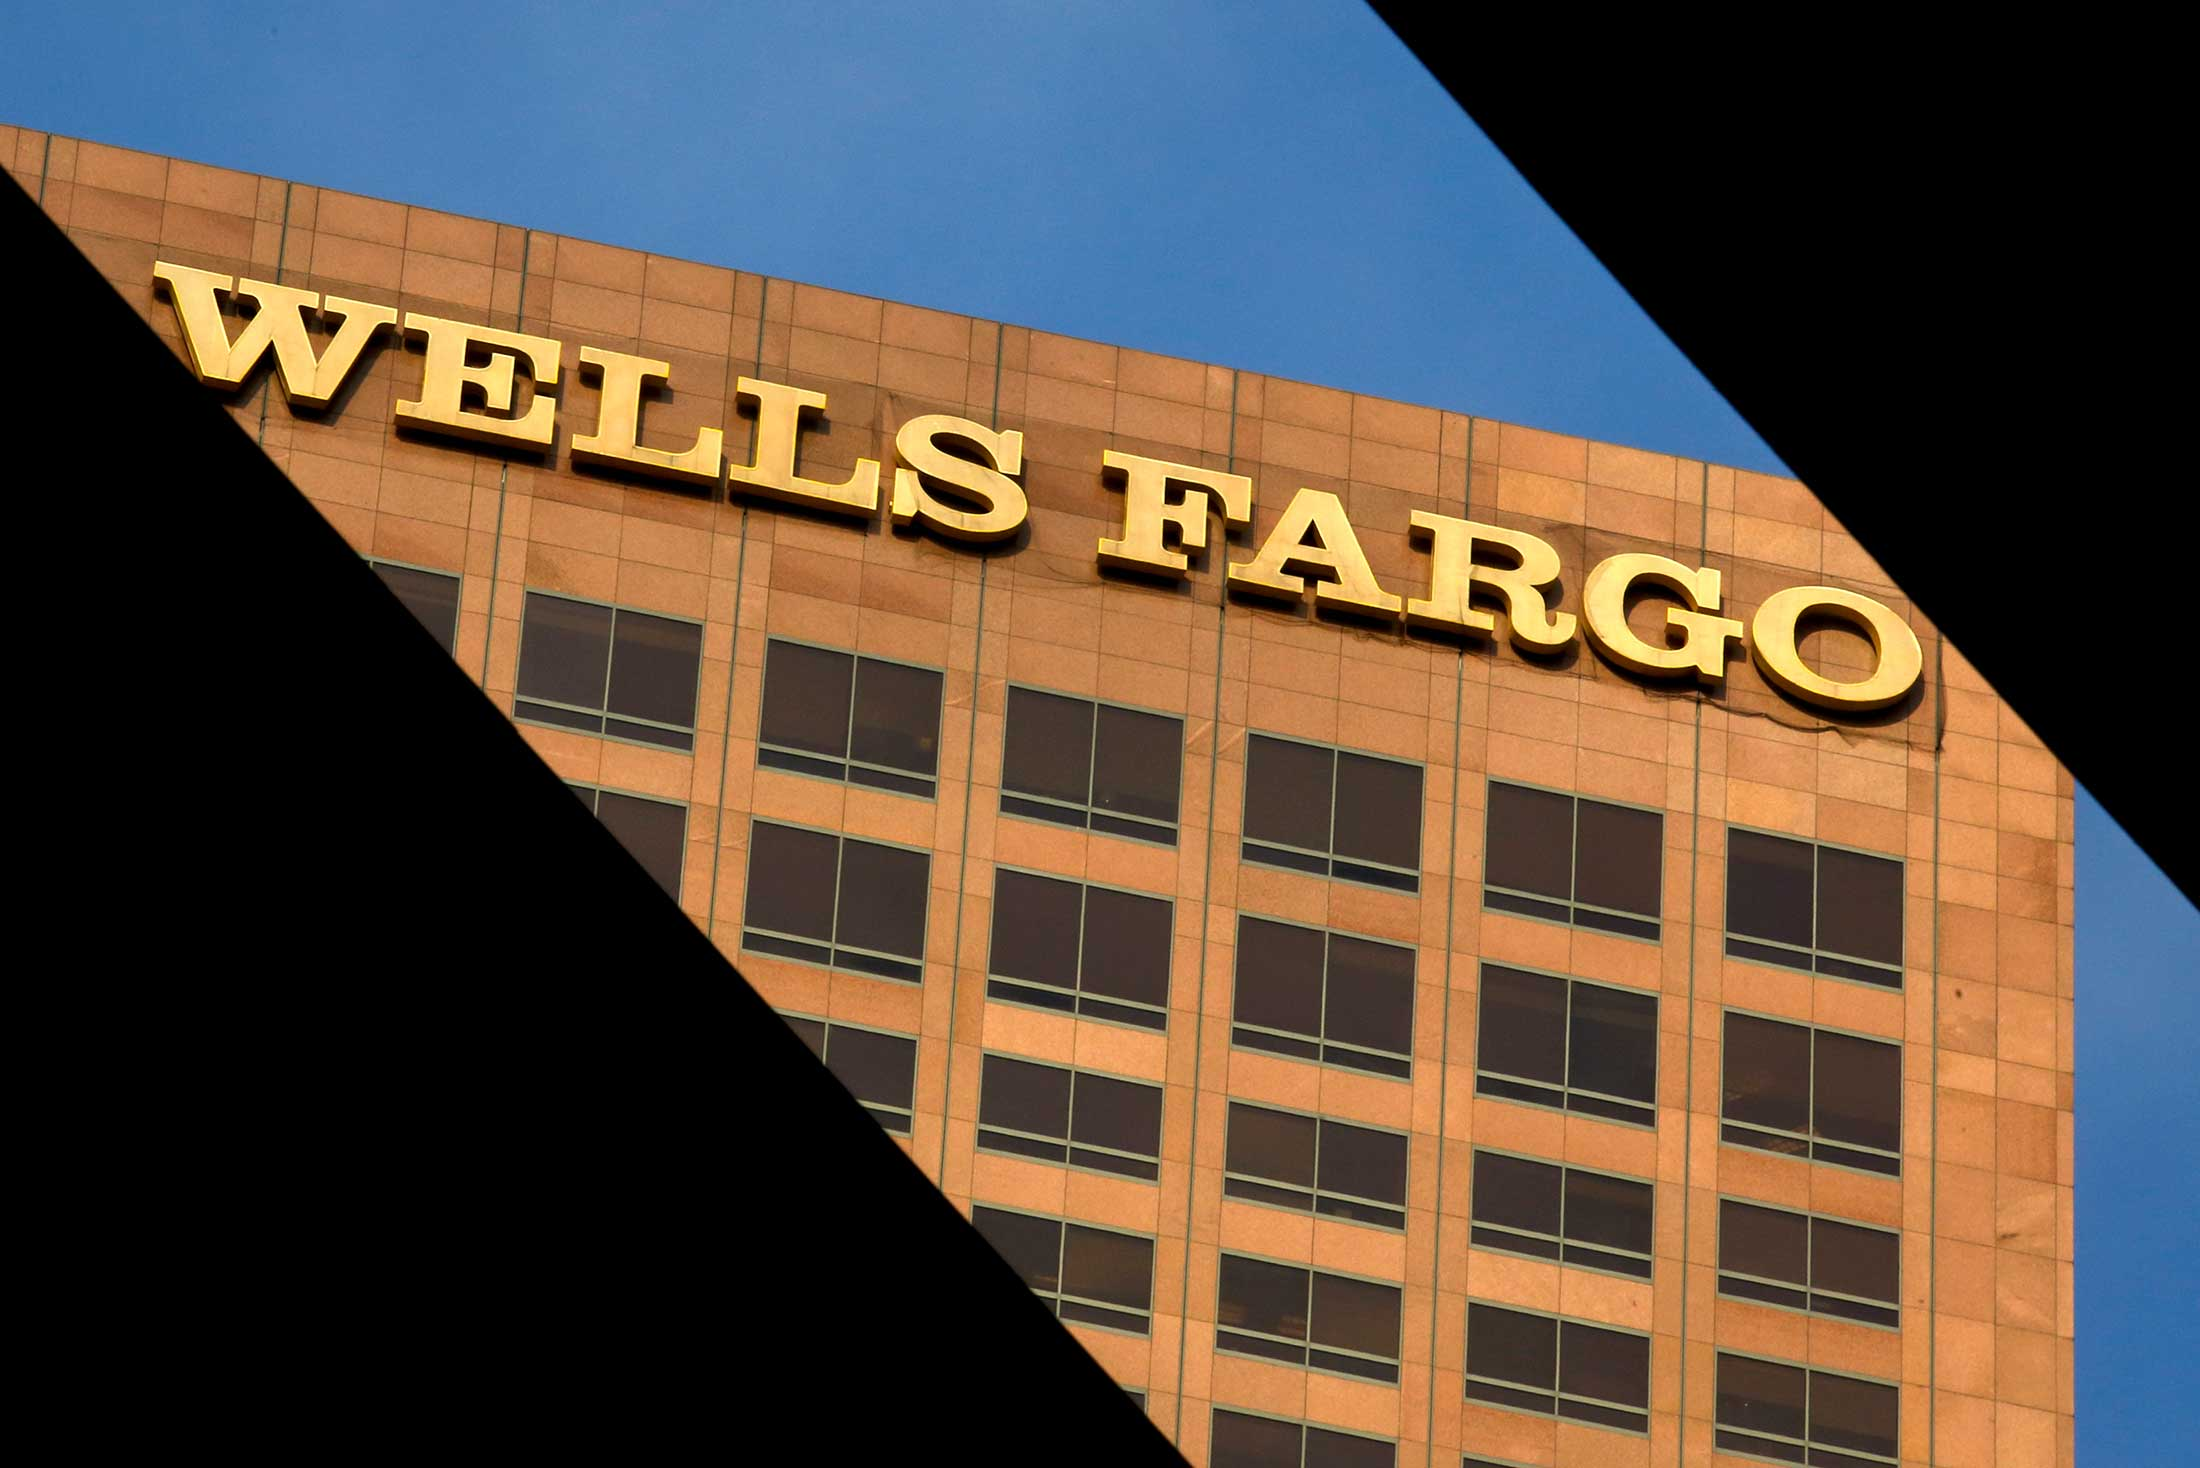 https://assets.sourcemedia.com/96/c7/55b33b224dea8c2b7ca73450ed39/wells-fargo-building-morning-light-bloomberg-news.jpg